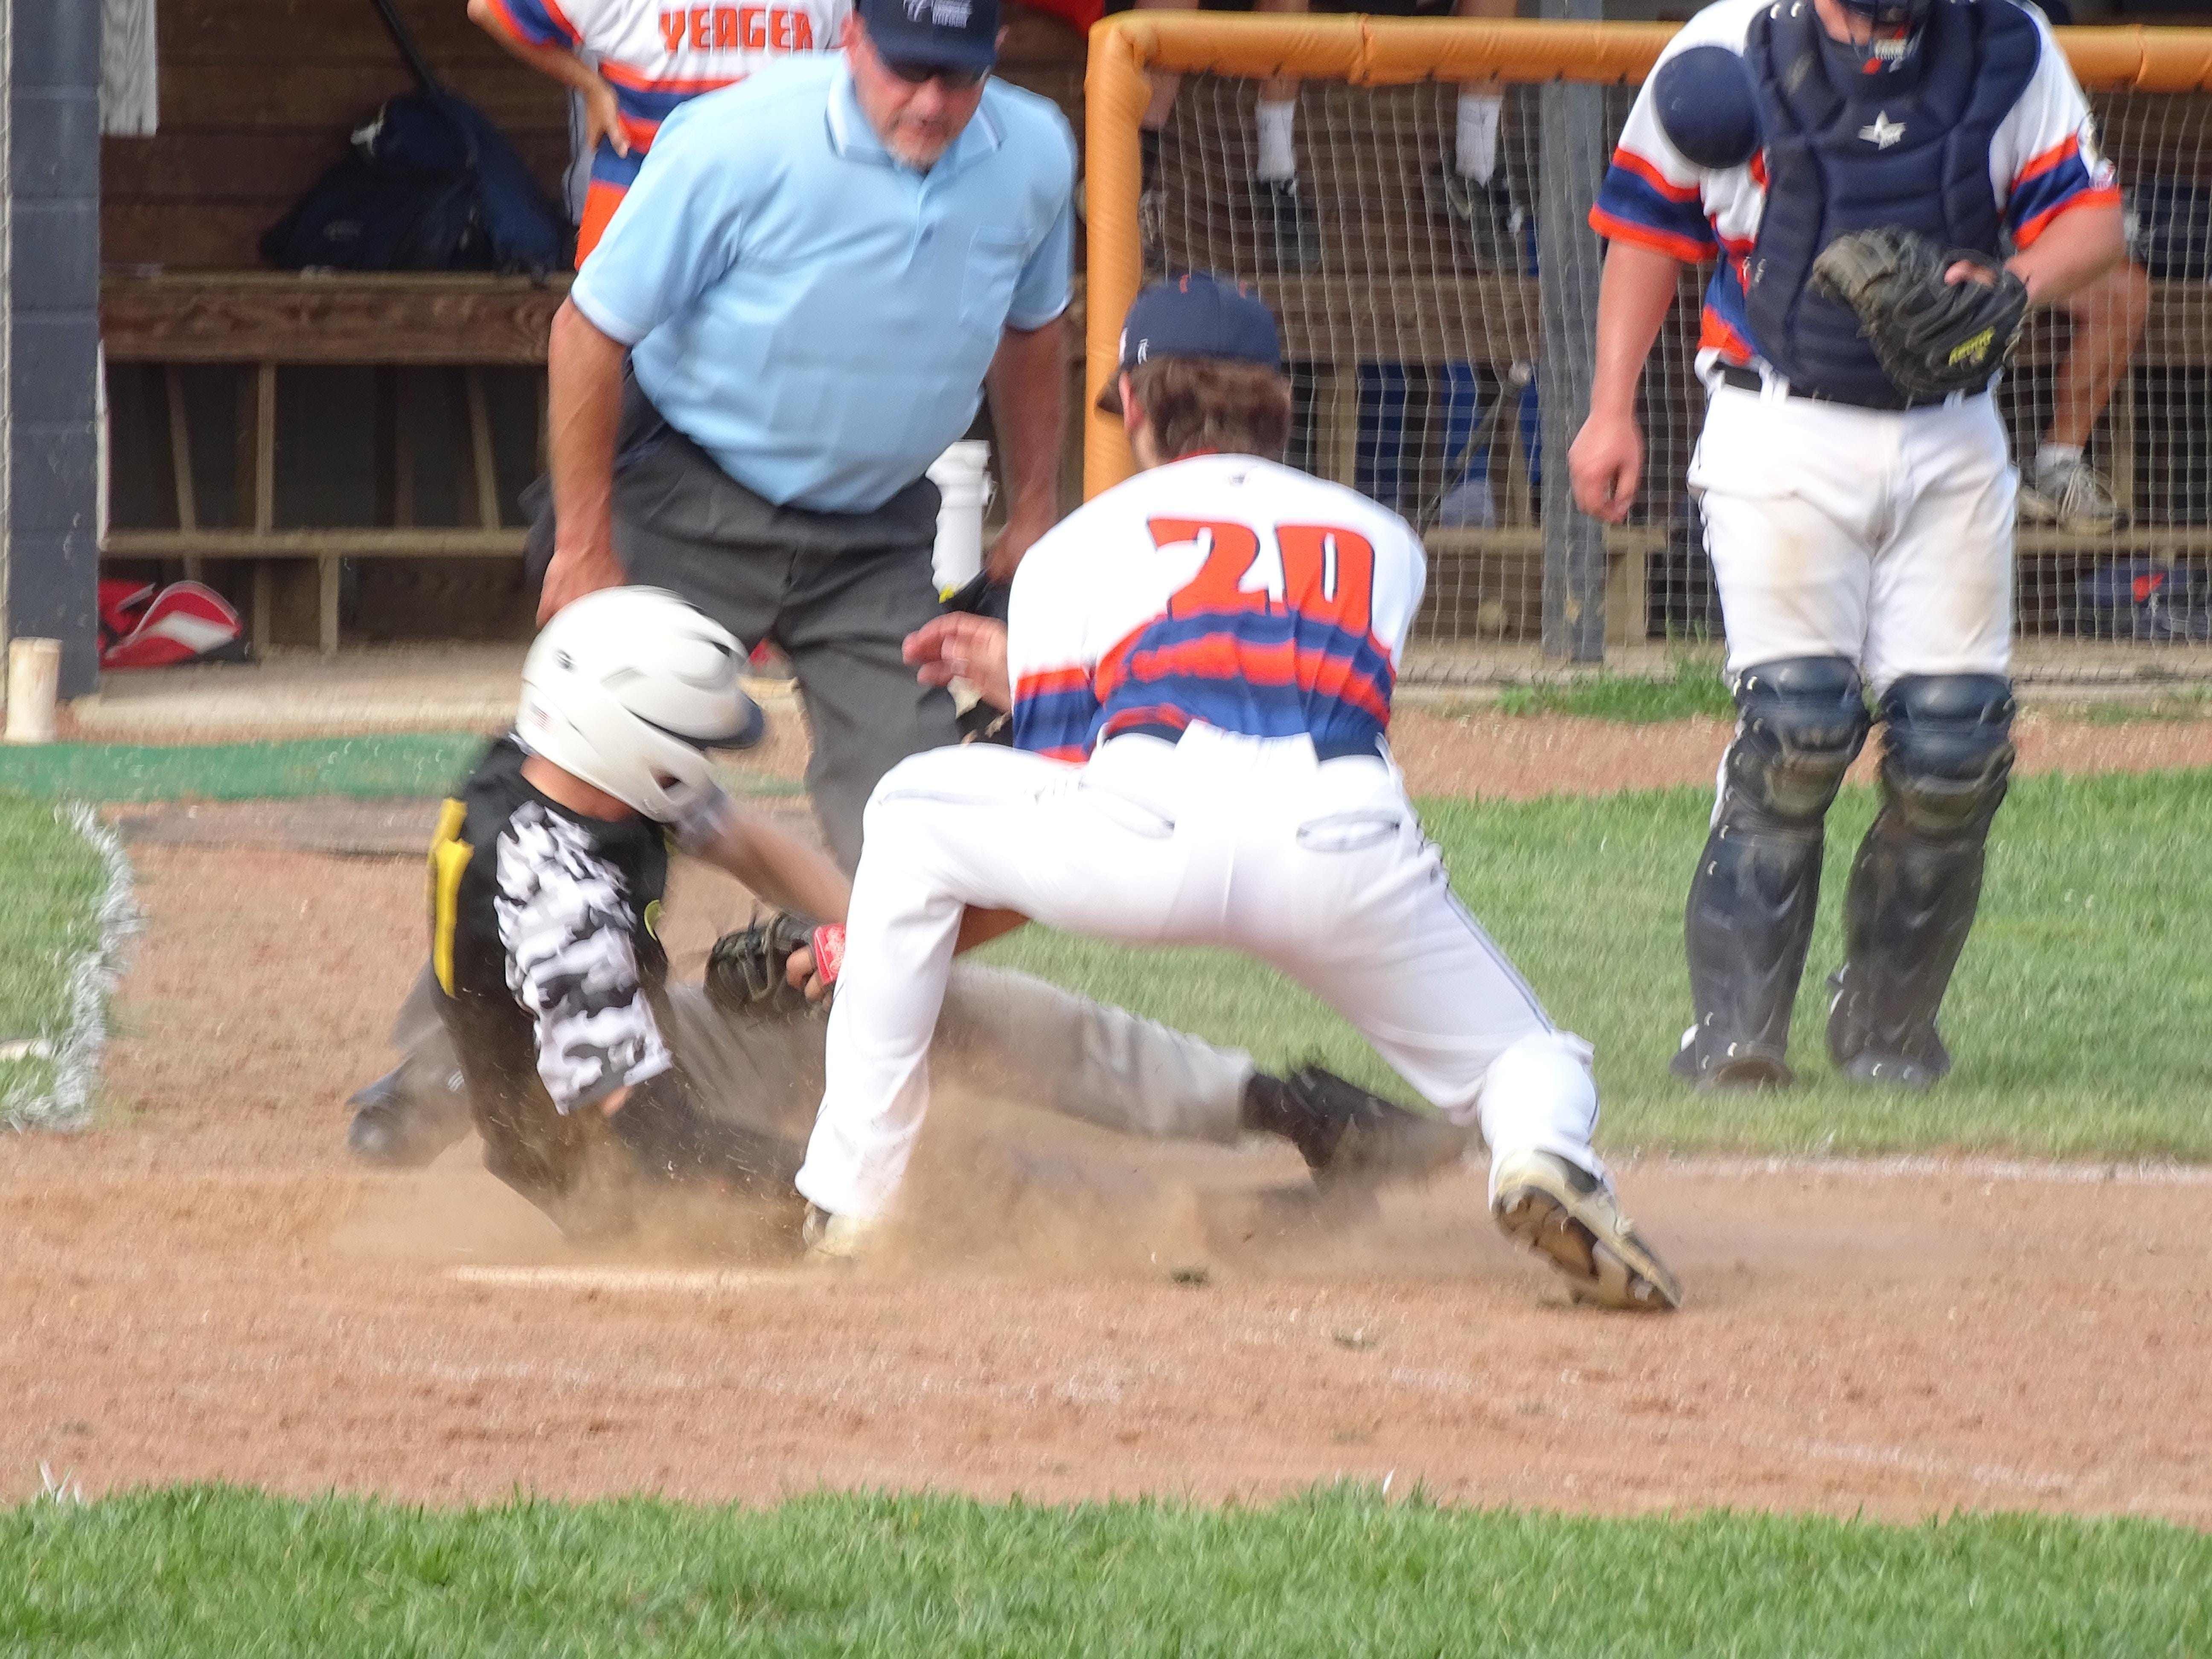 Waverly Post 142's Logan Kottebrook is tagged out sliding into home plate during the first inning of Thursday night's game against Cincinnati Yeager at Waverly High School. Post 142 fell to Yeager, 15-1.